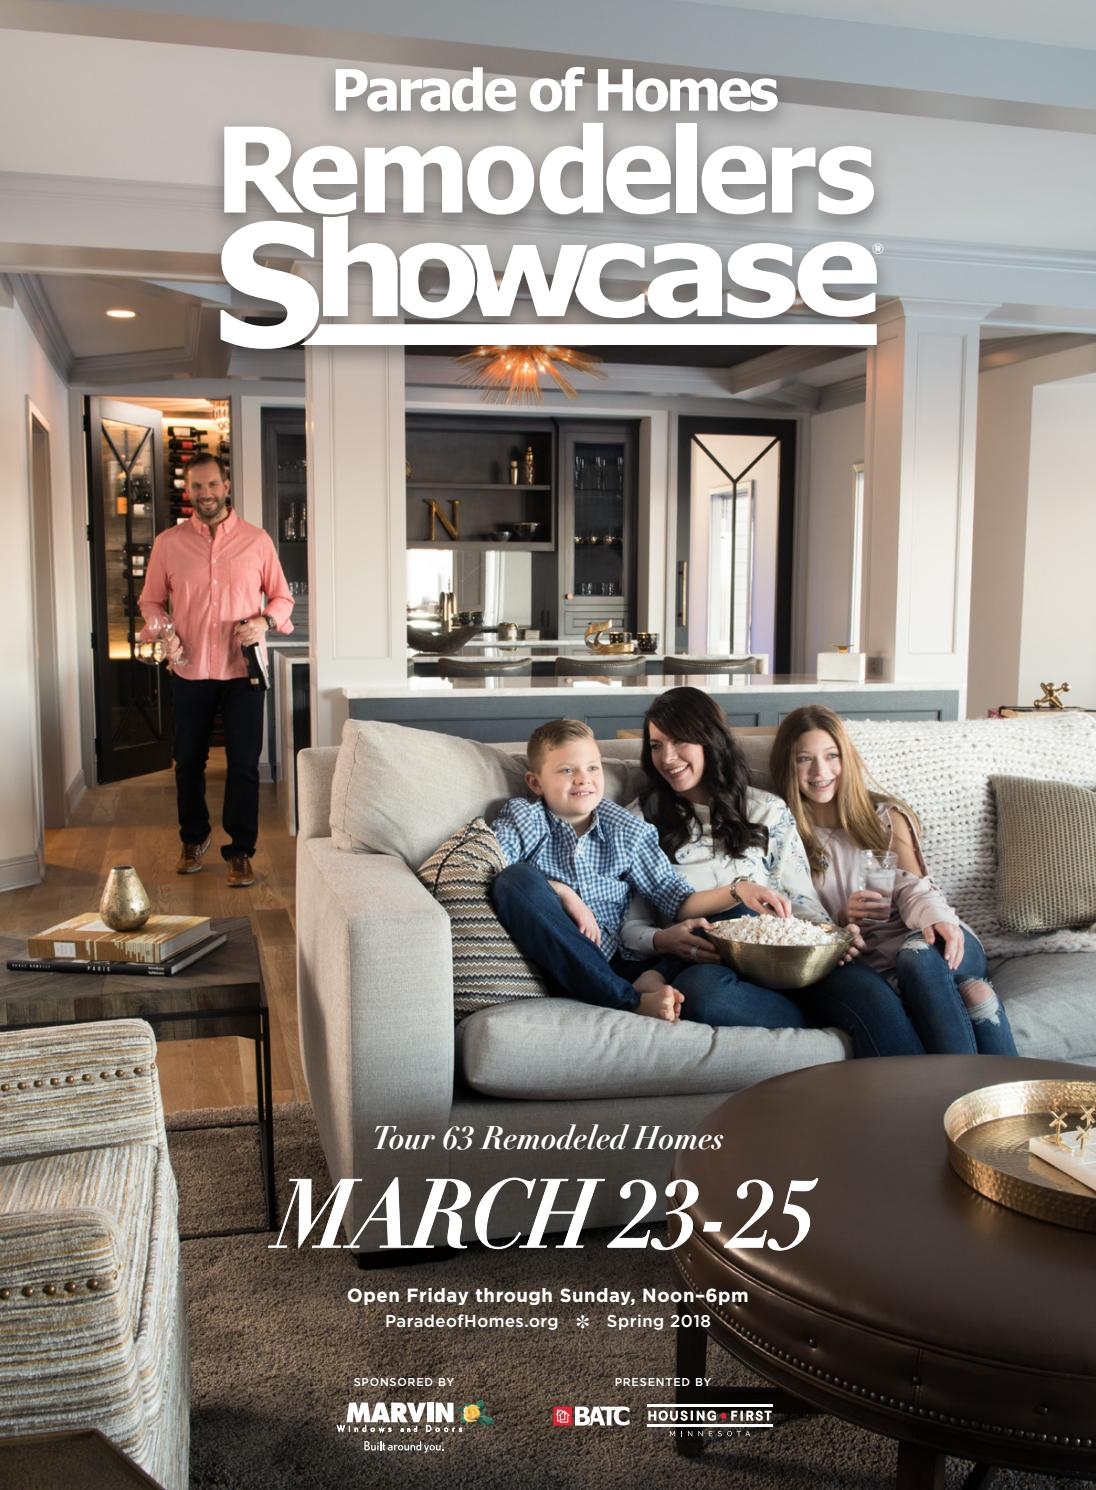 2018 Spring Parade of Homes Remodelers Showcase® Guidebook by BATC